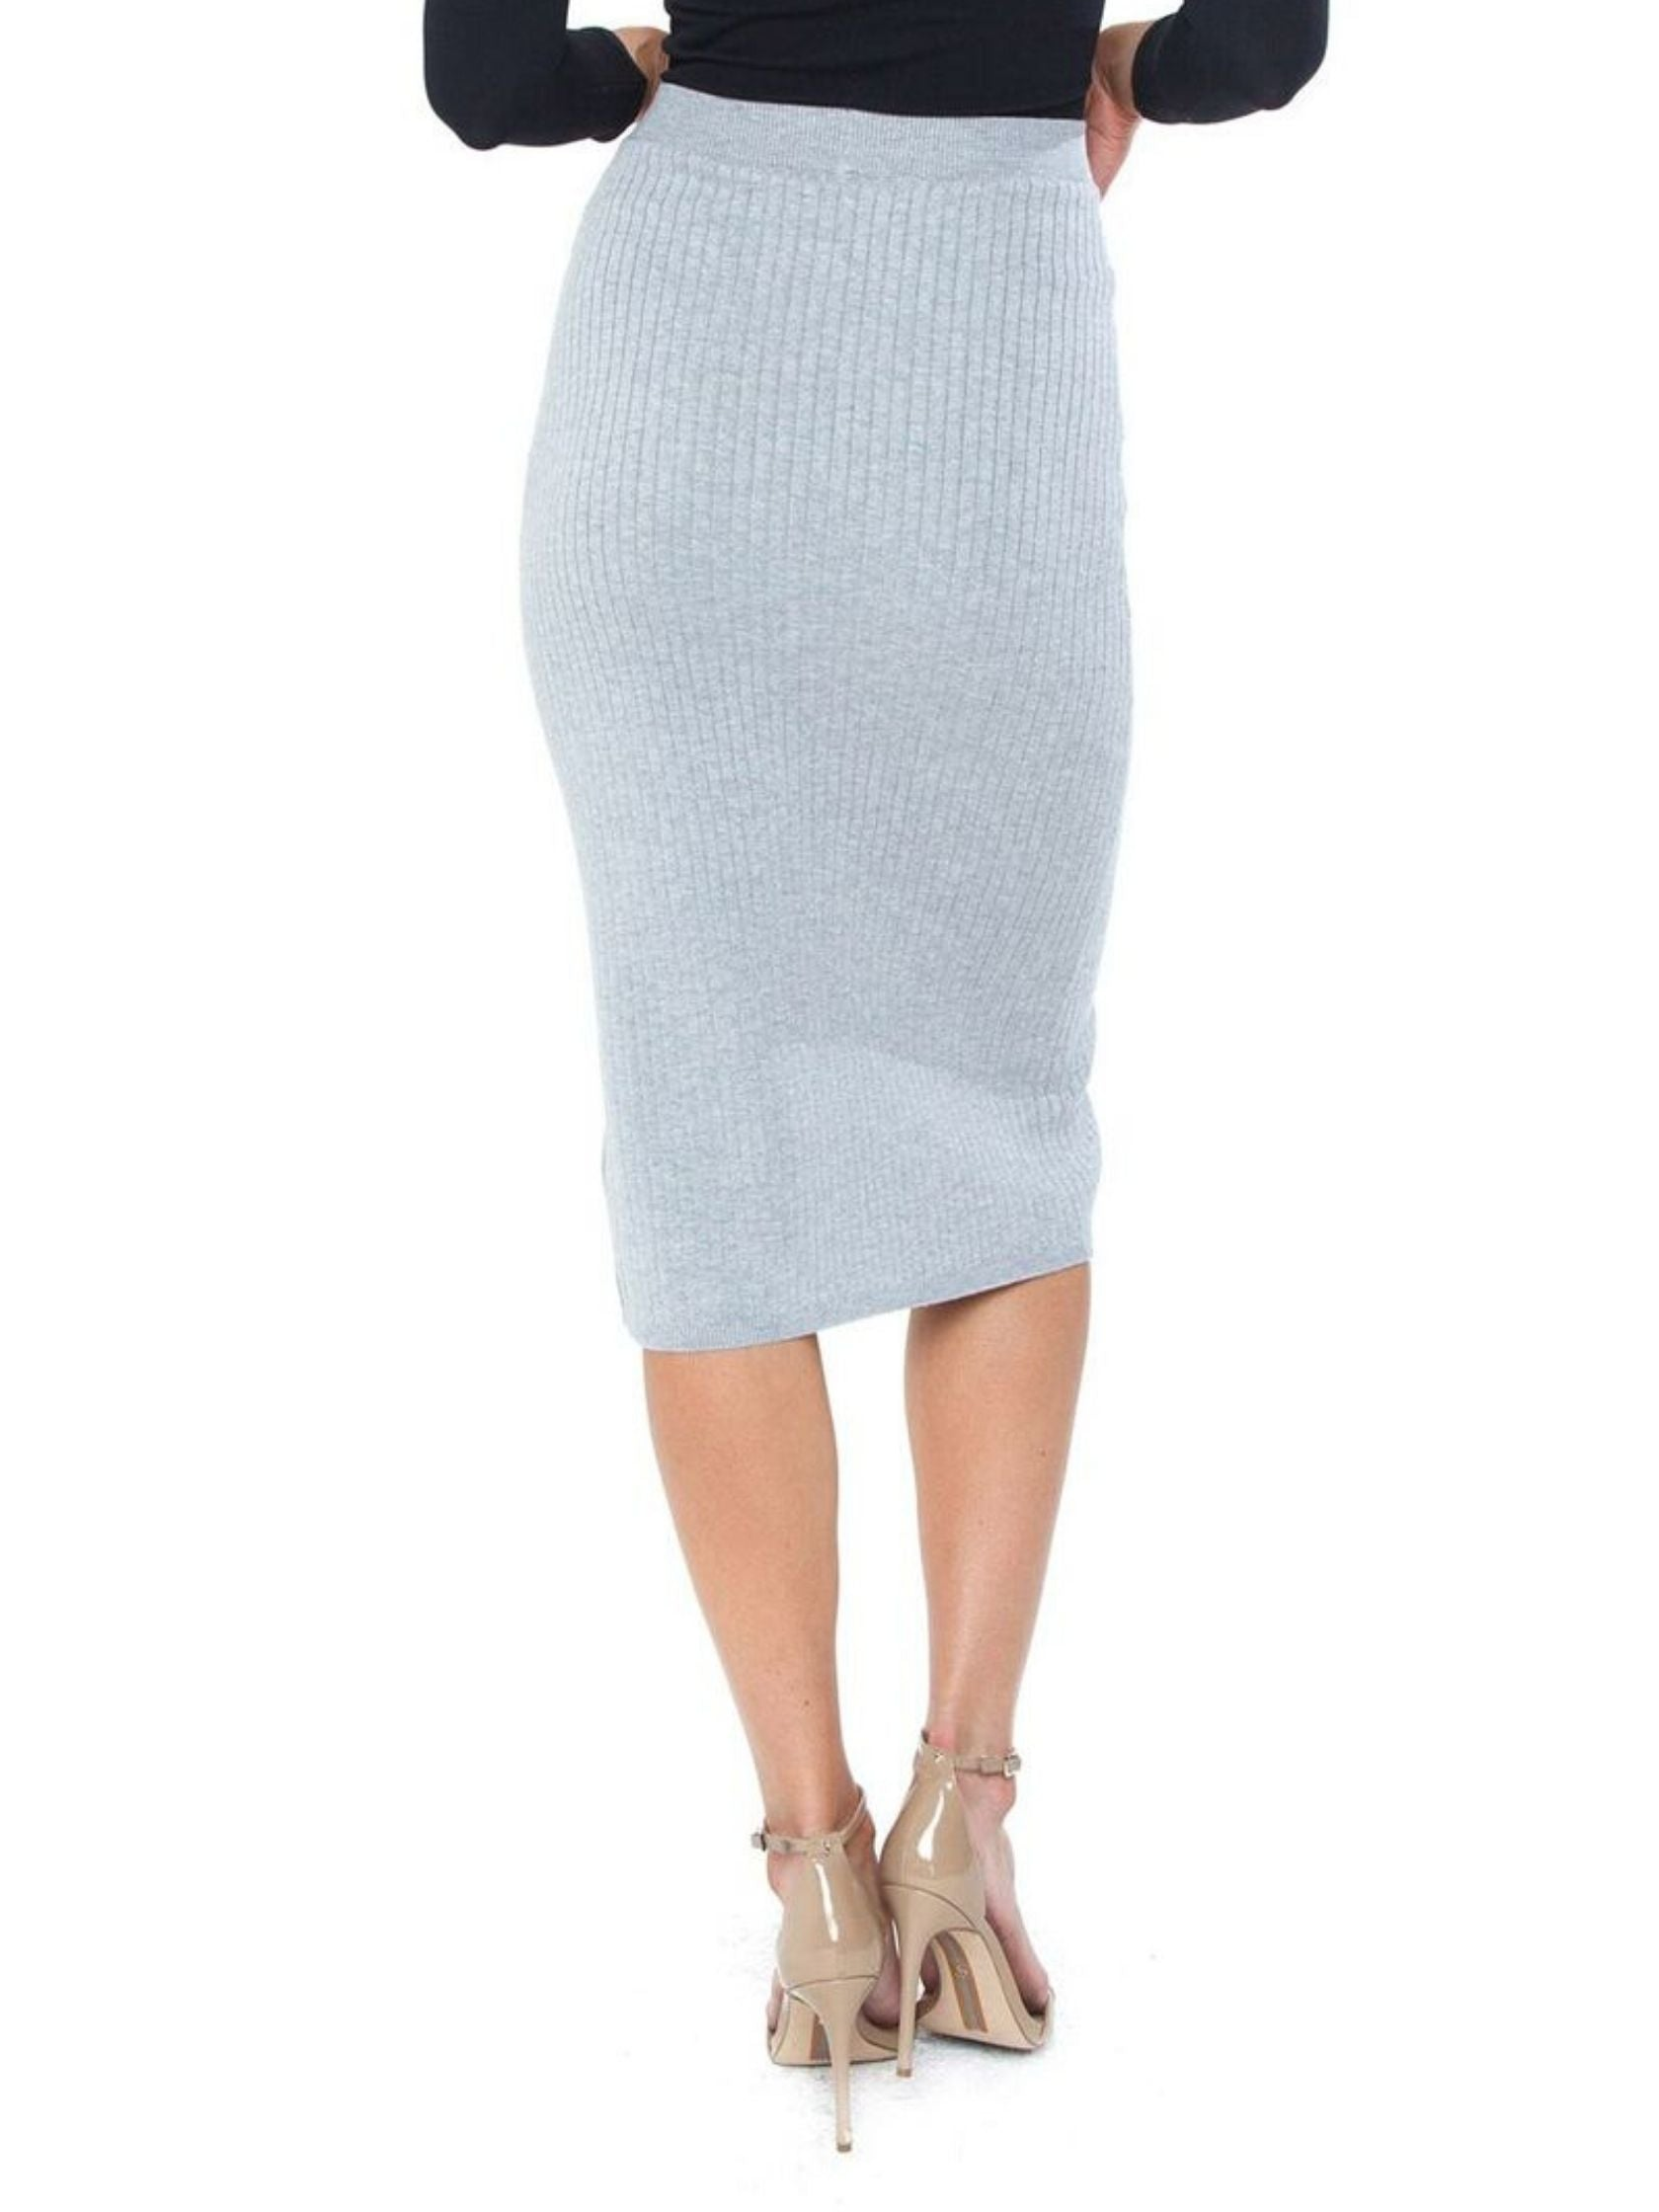 Women outfit in a skirt rental from Free People called Skyline Midi